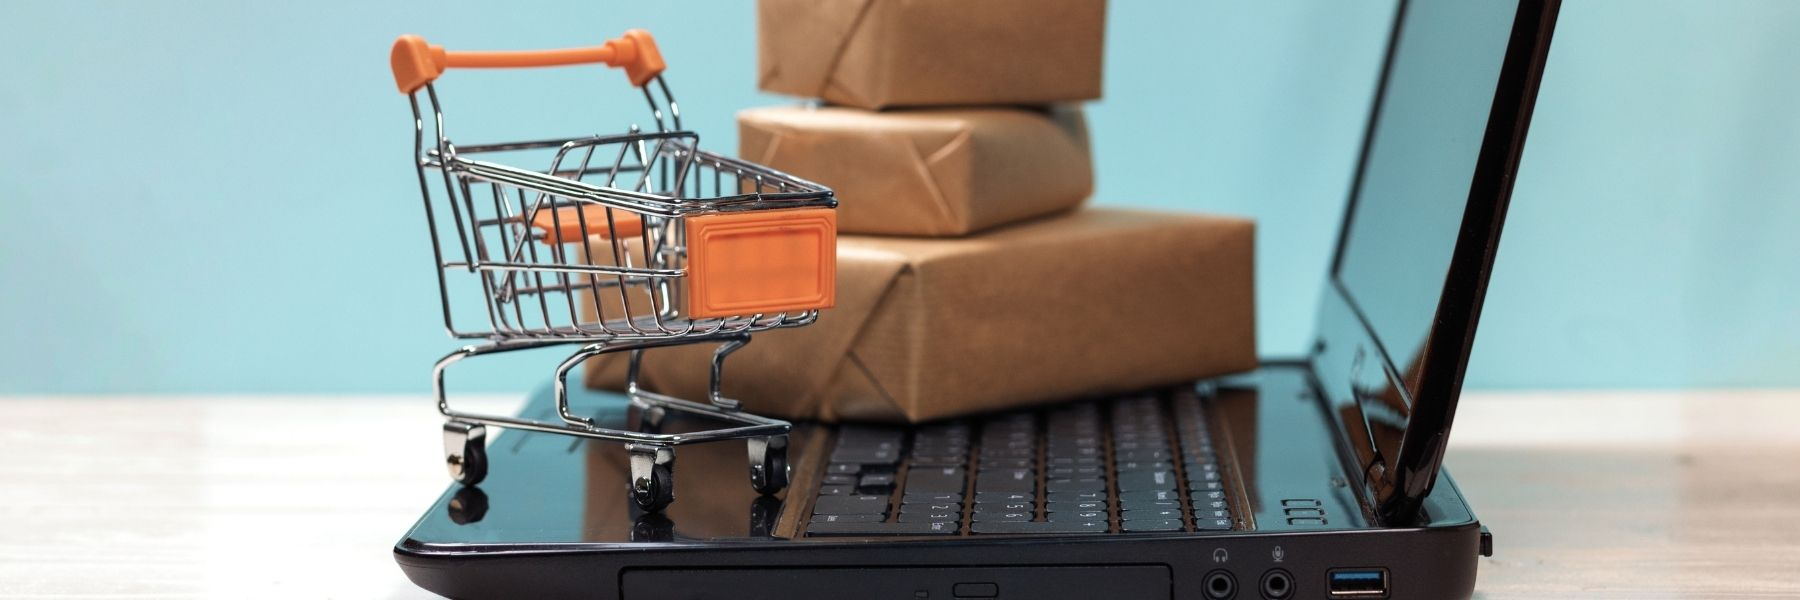 Tiny shopping cart and wrapped packages balanced on a laptop